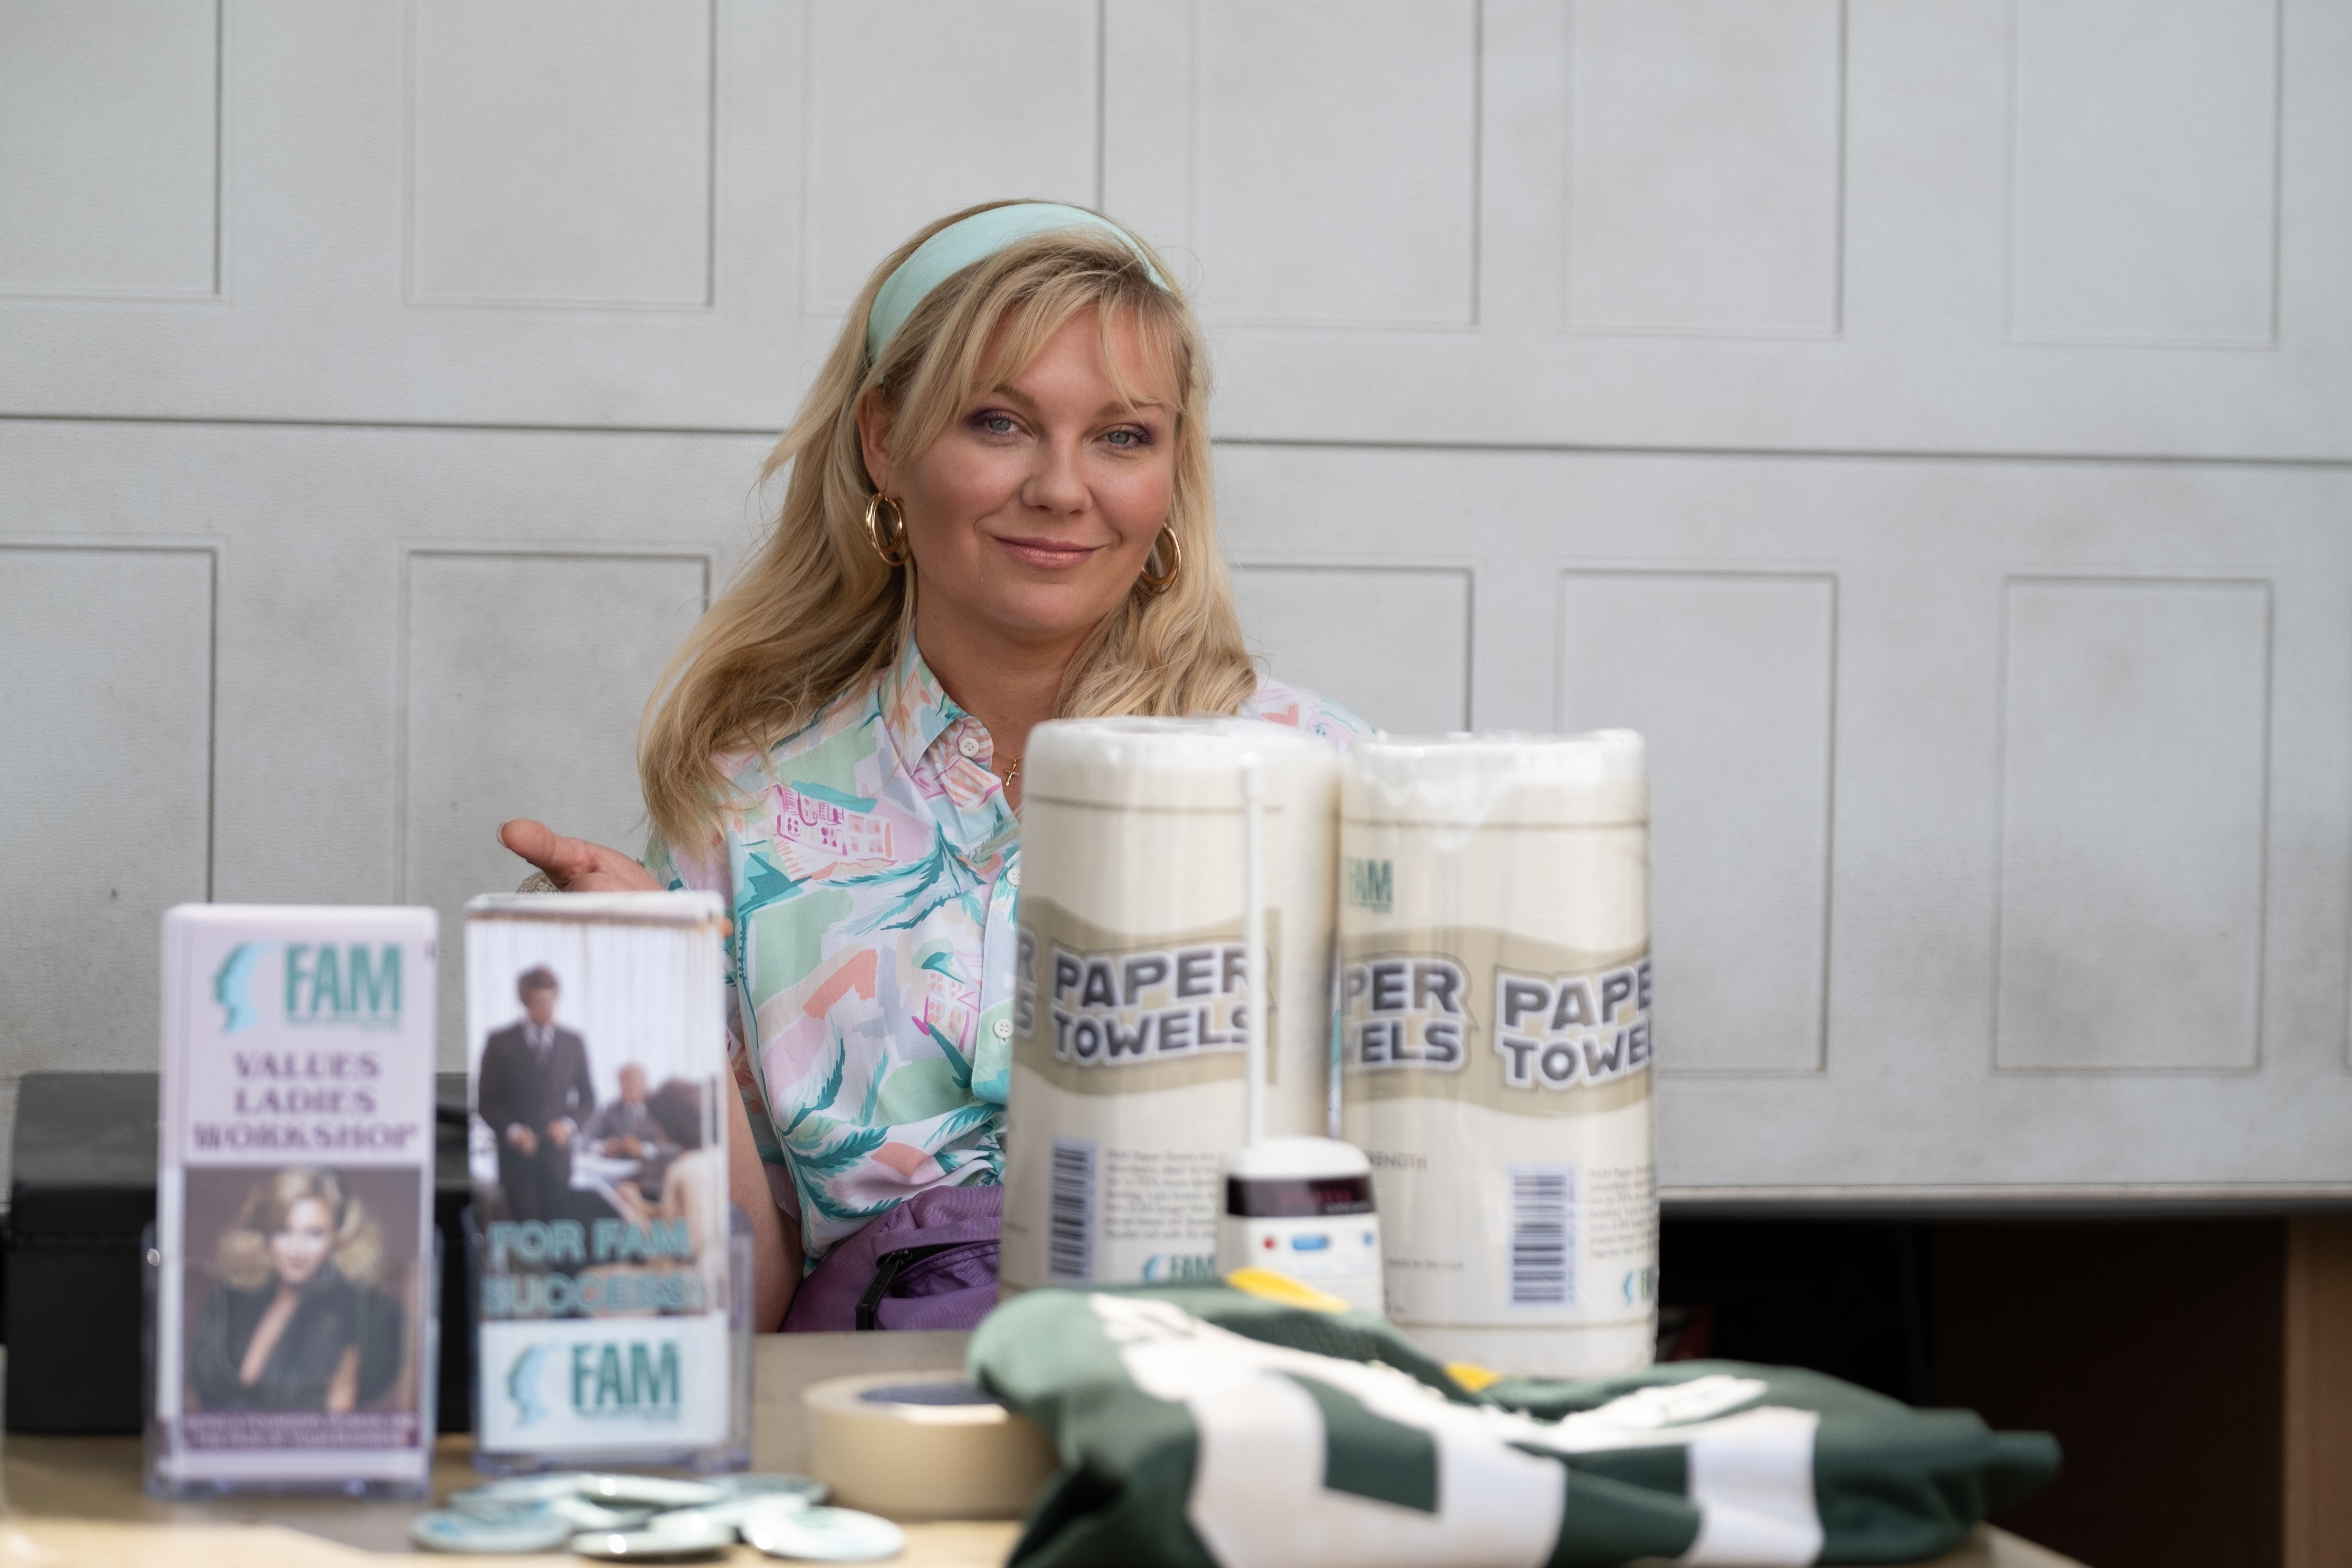 """Krystal Stubbs (Kirsten Dunst) hustles the products offered by Founders American Merchandise, a pyramid scheme, on the new Showtime series """"On Becoming a God in Central Florida."""""""